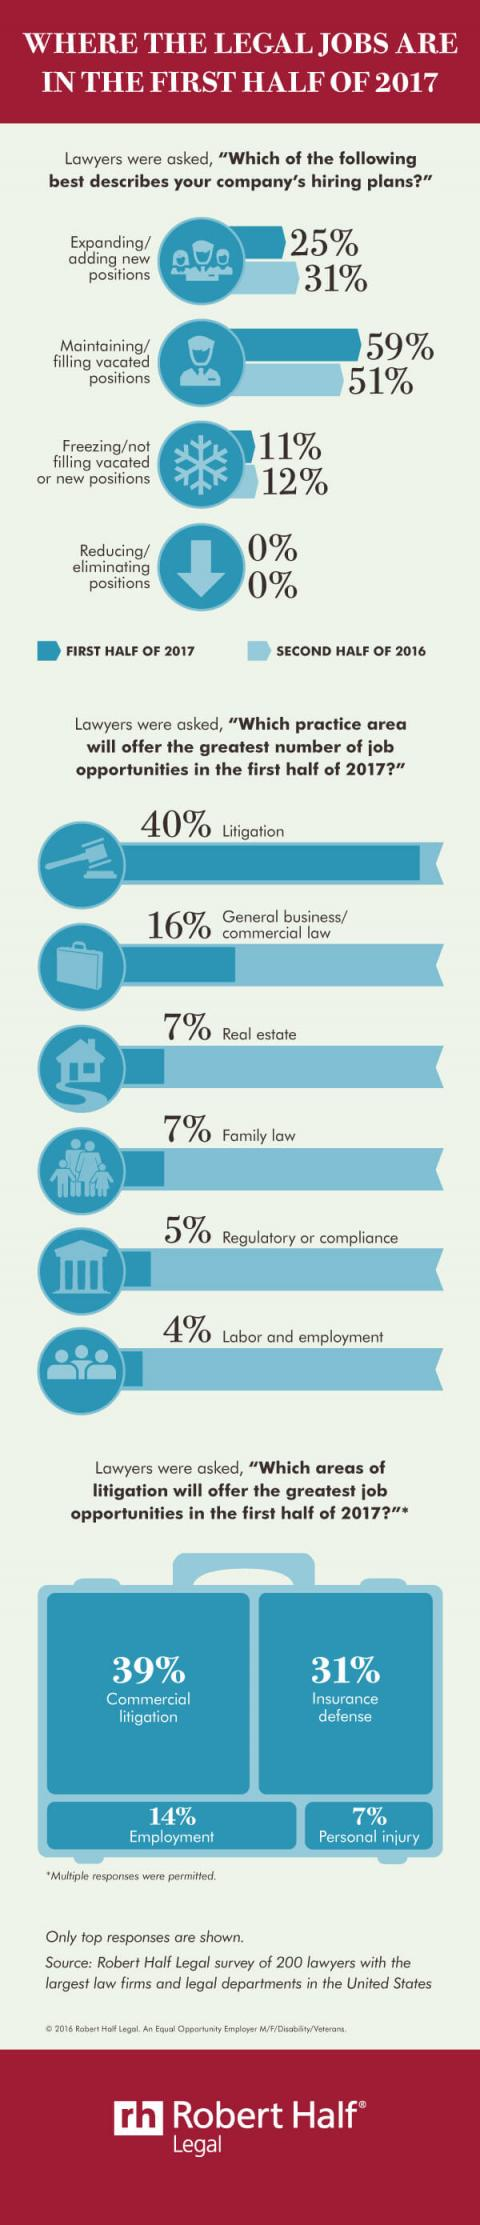 An infographic featuring the results of a survey about job prospects for legal professionals in the U.S. for the first half of 2017